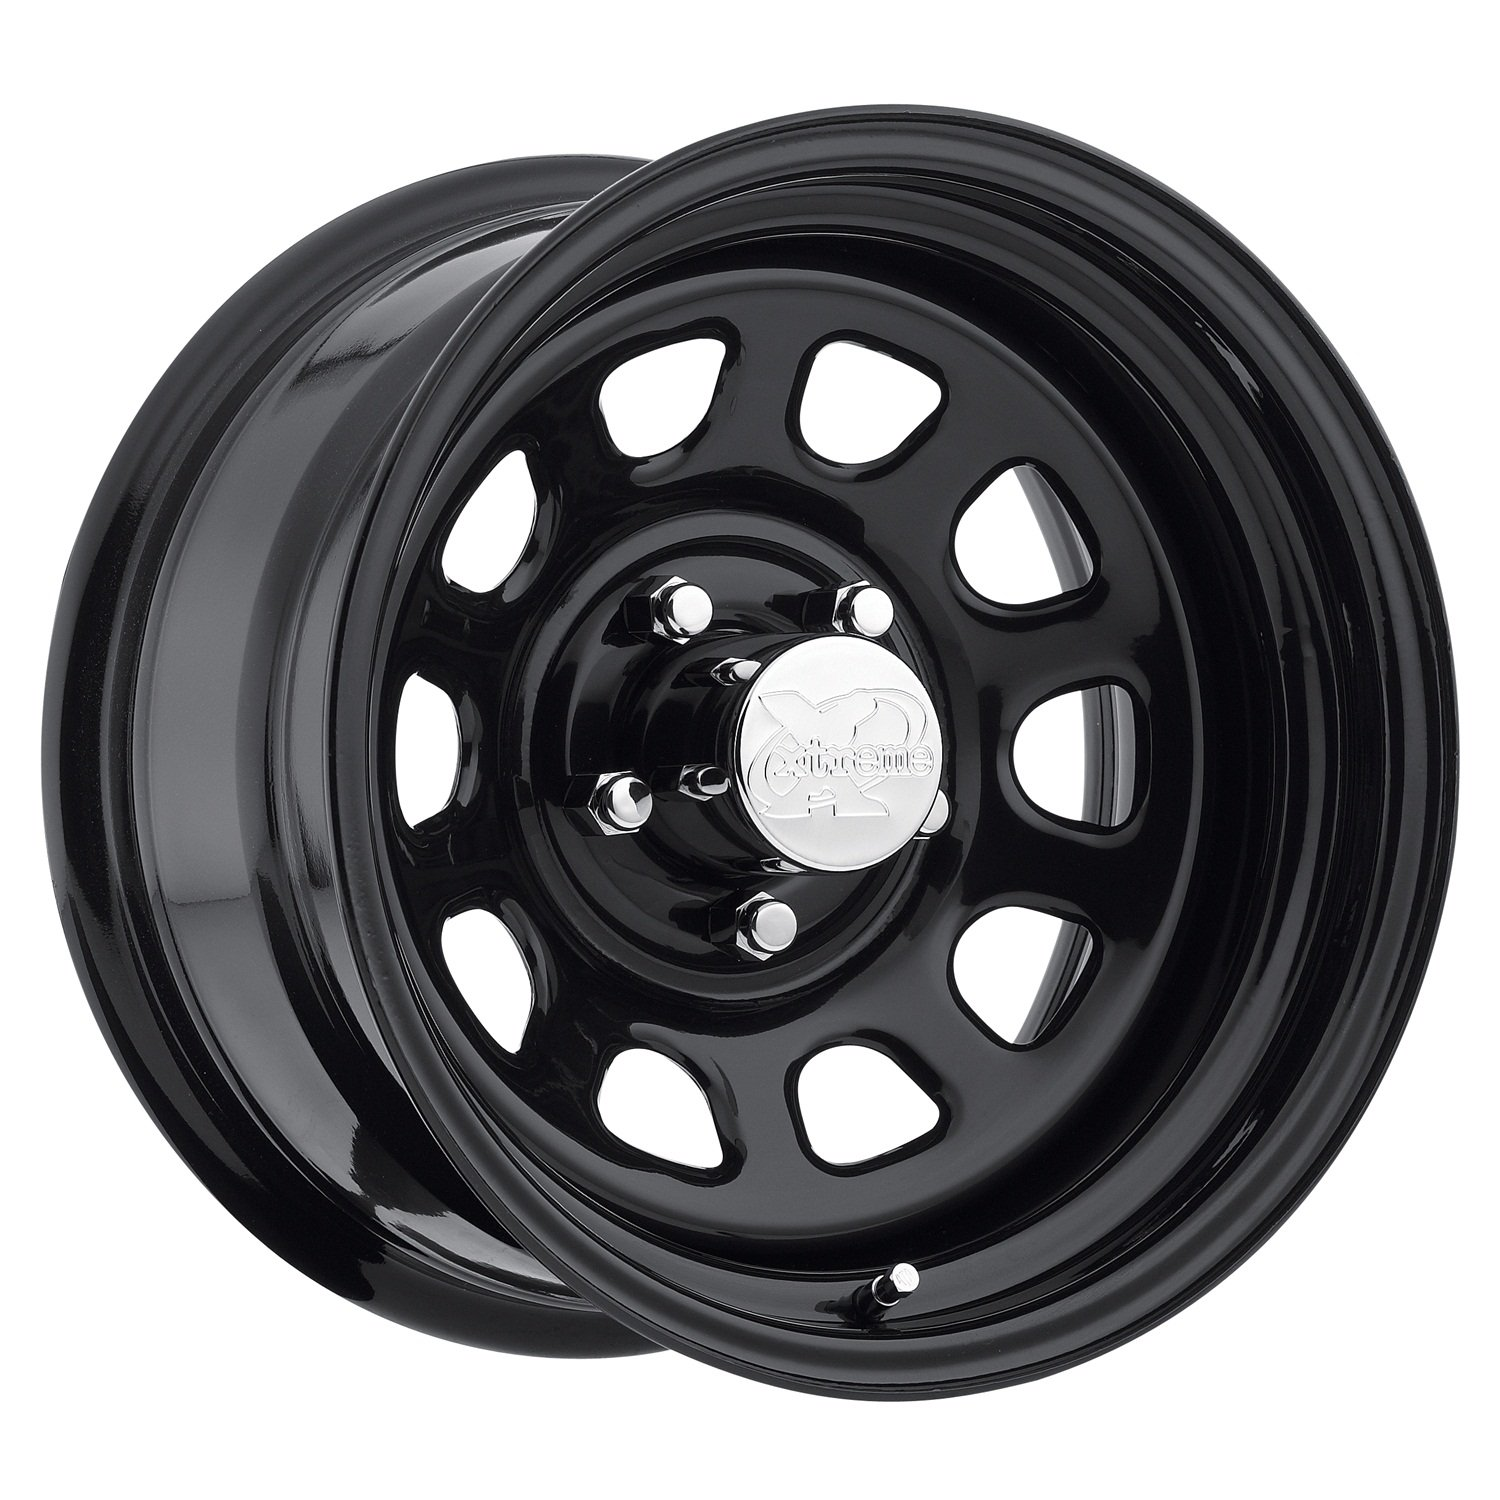 Pro Comp Steel Wheels Series 51 Wheel with Gloss Black Finish (17x9''/6x5.5'')